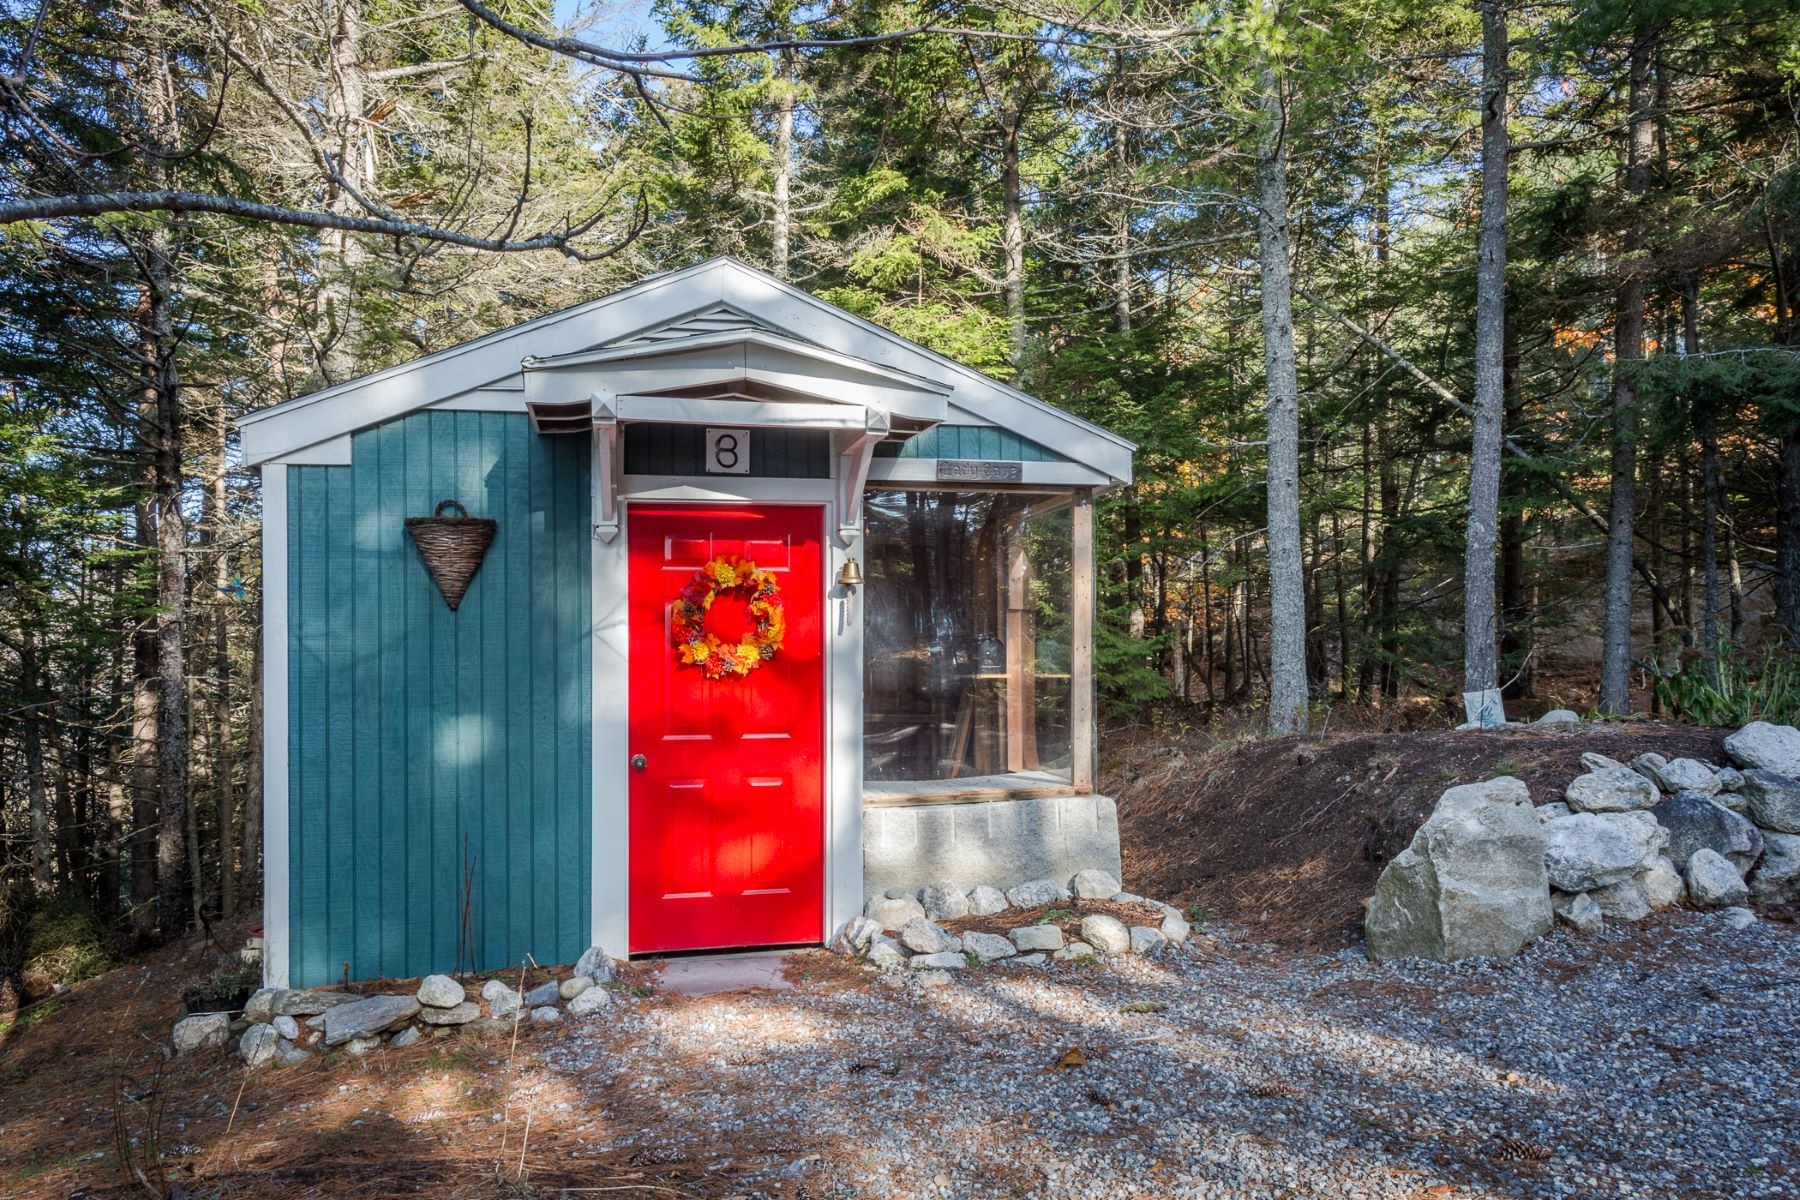 Additional photo for property listing at 8 Holly Hill Road 8 Holly Hill Road Harpswell, Maine 04079 United States